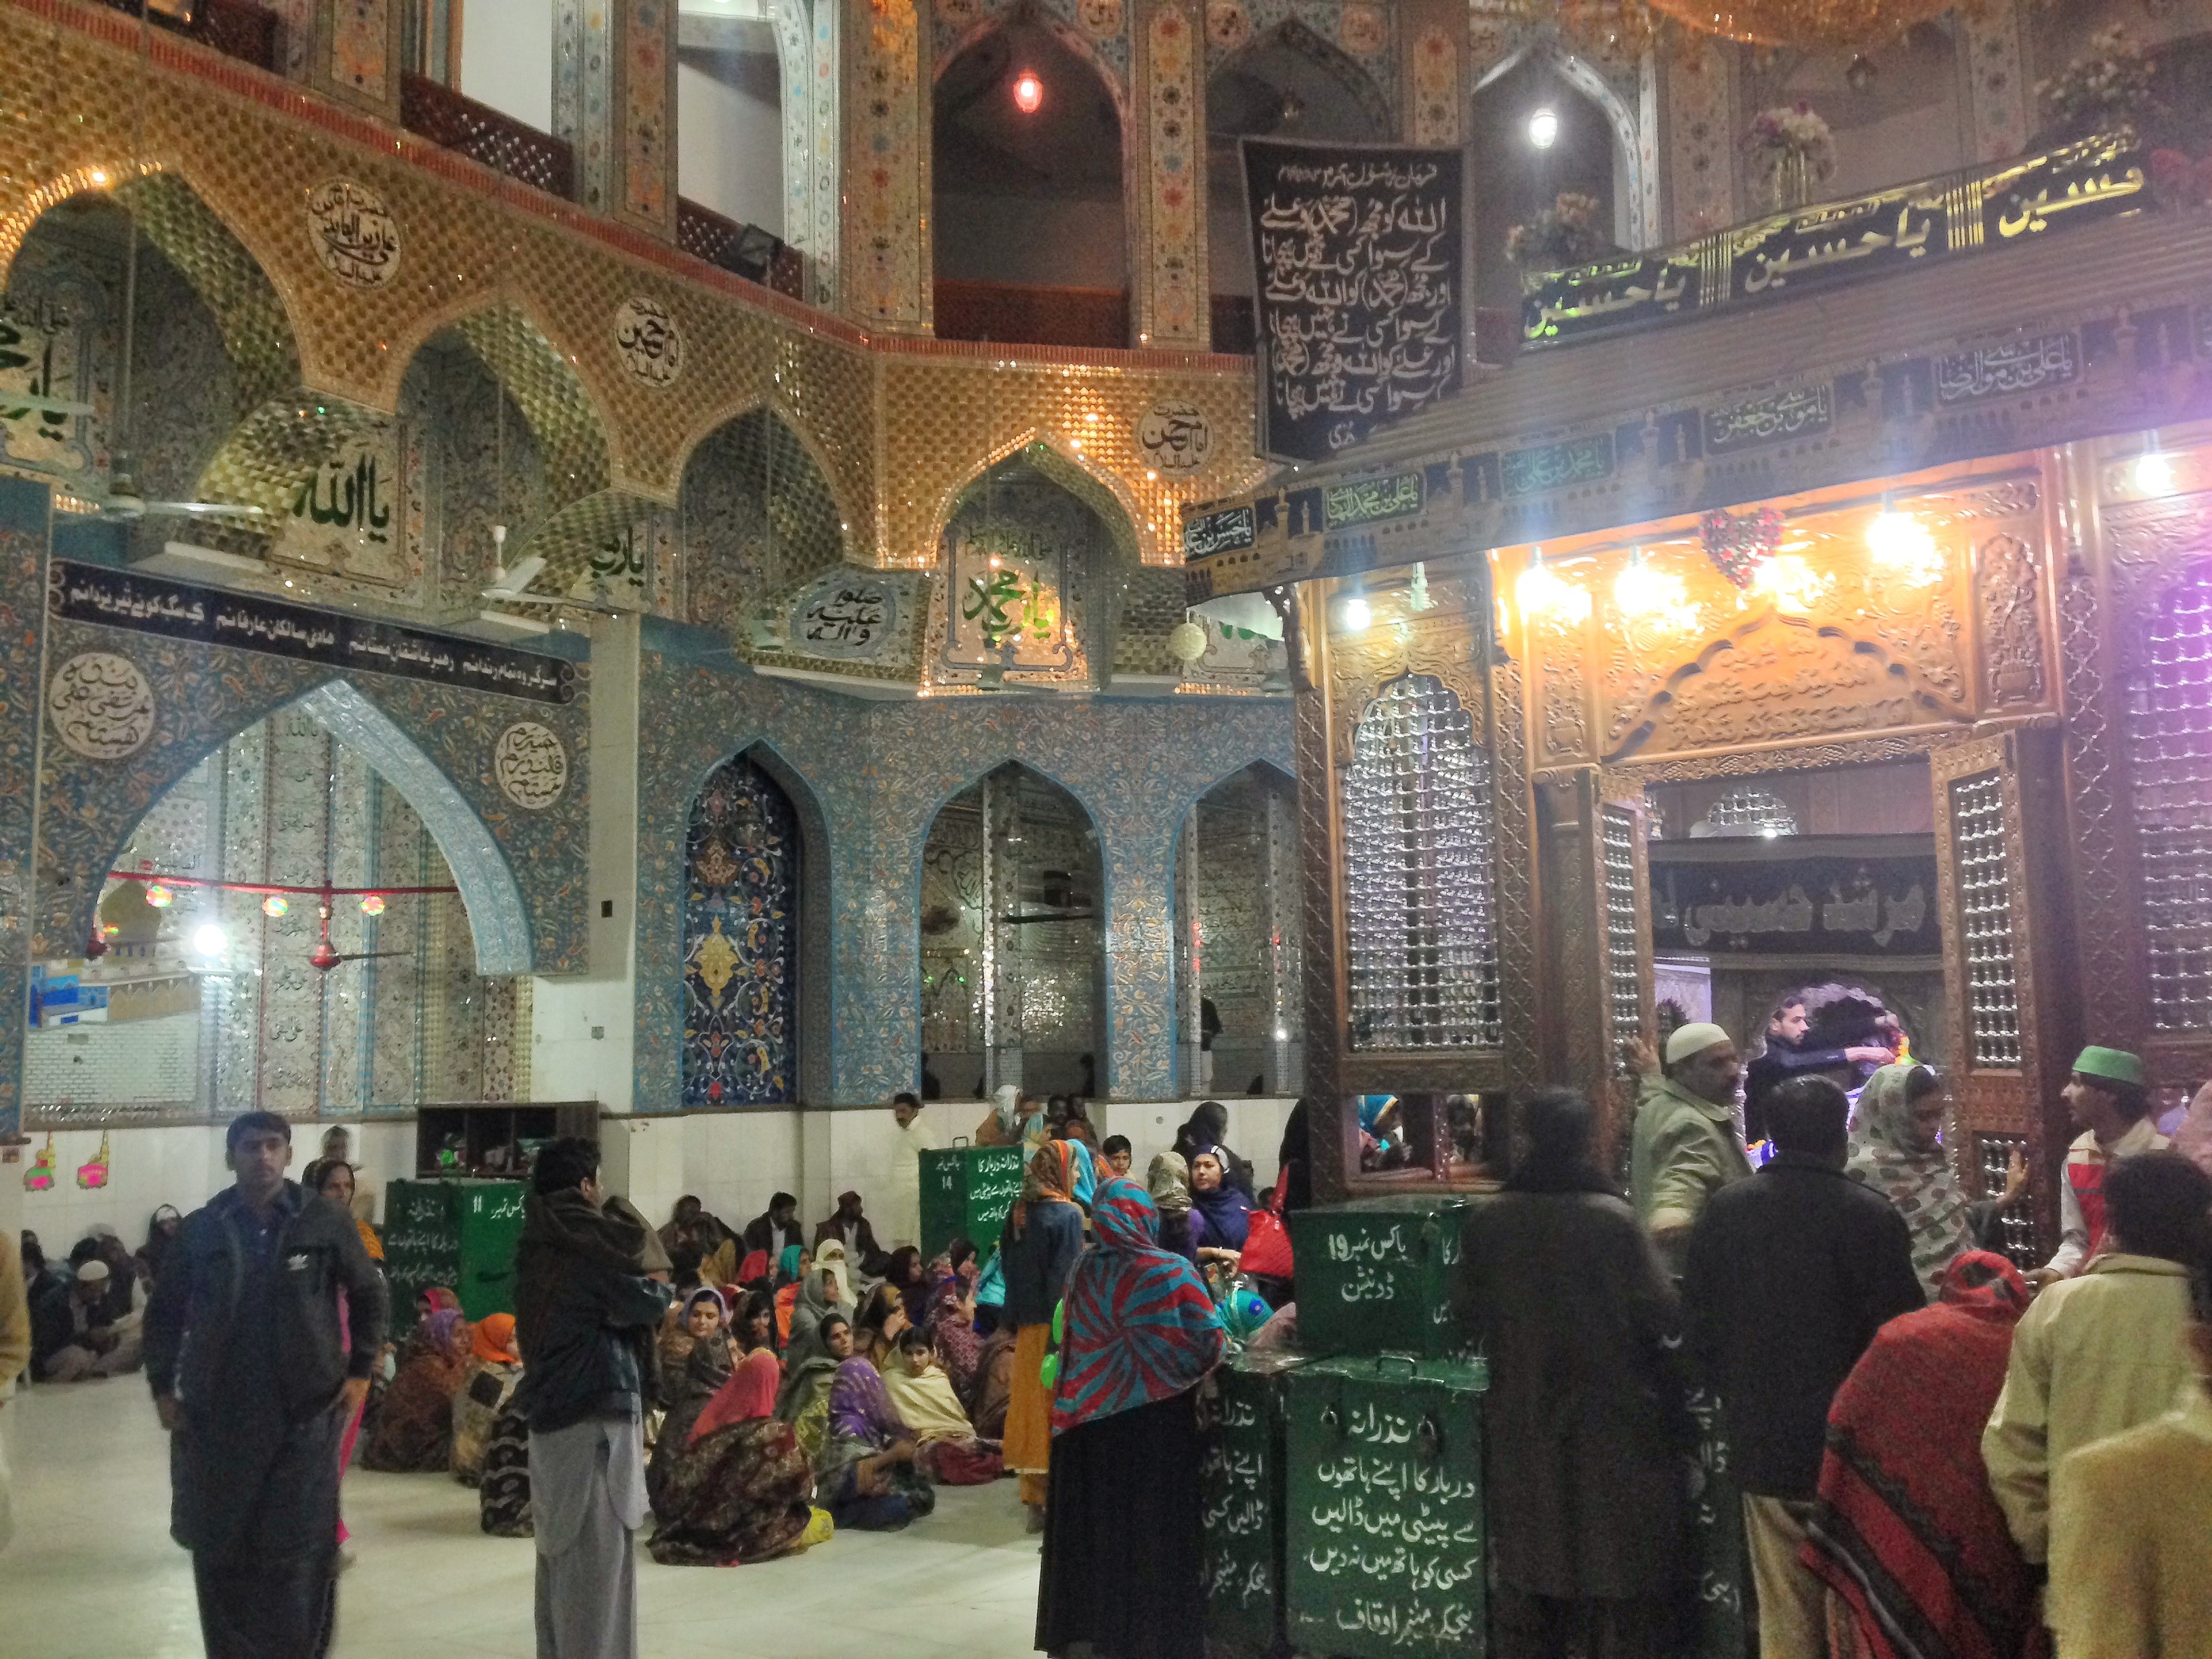 The inner sanctum of the Shrine is much quieter than the outer-courtyard, where the Dhamaal takes place. Here, worshippers pay their religious dues to the Sufi Saint and indulge in Zikr, a form of rhythmic devotion.